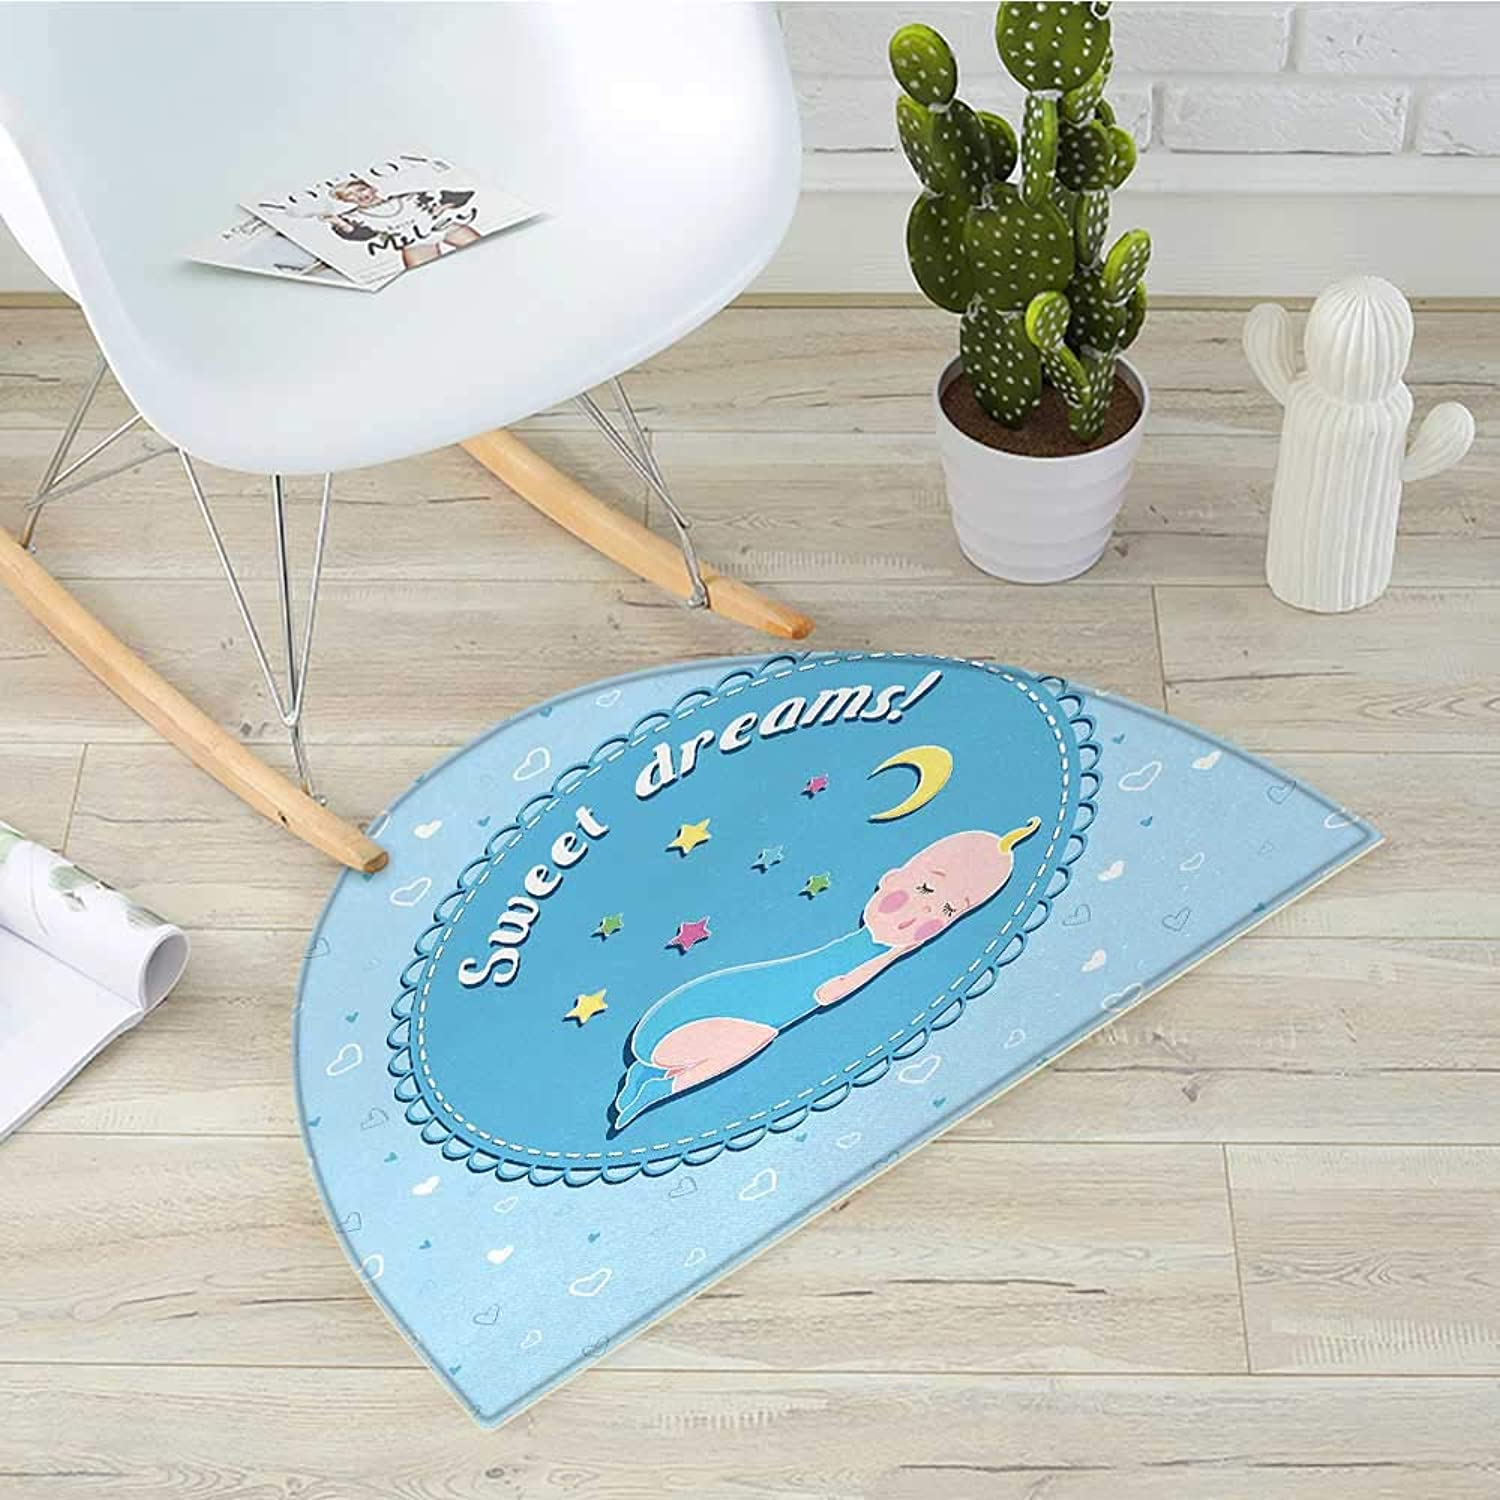 Sweet Dreams Semicircle Doormat Newborn Baby Sleeping with colorful Stars and Moon on Heart Filled Background Halfmoon doormats H 39.3  xD 59  Multicolor